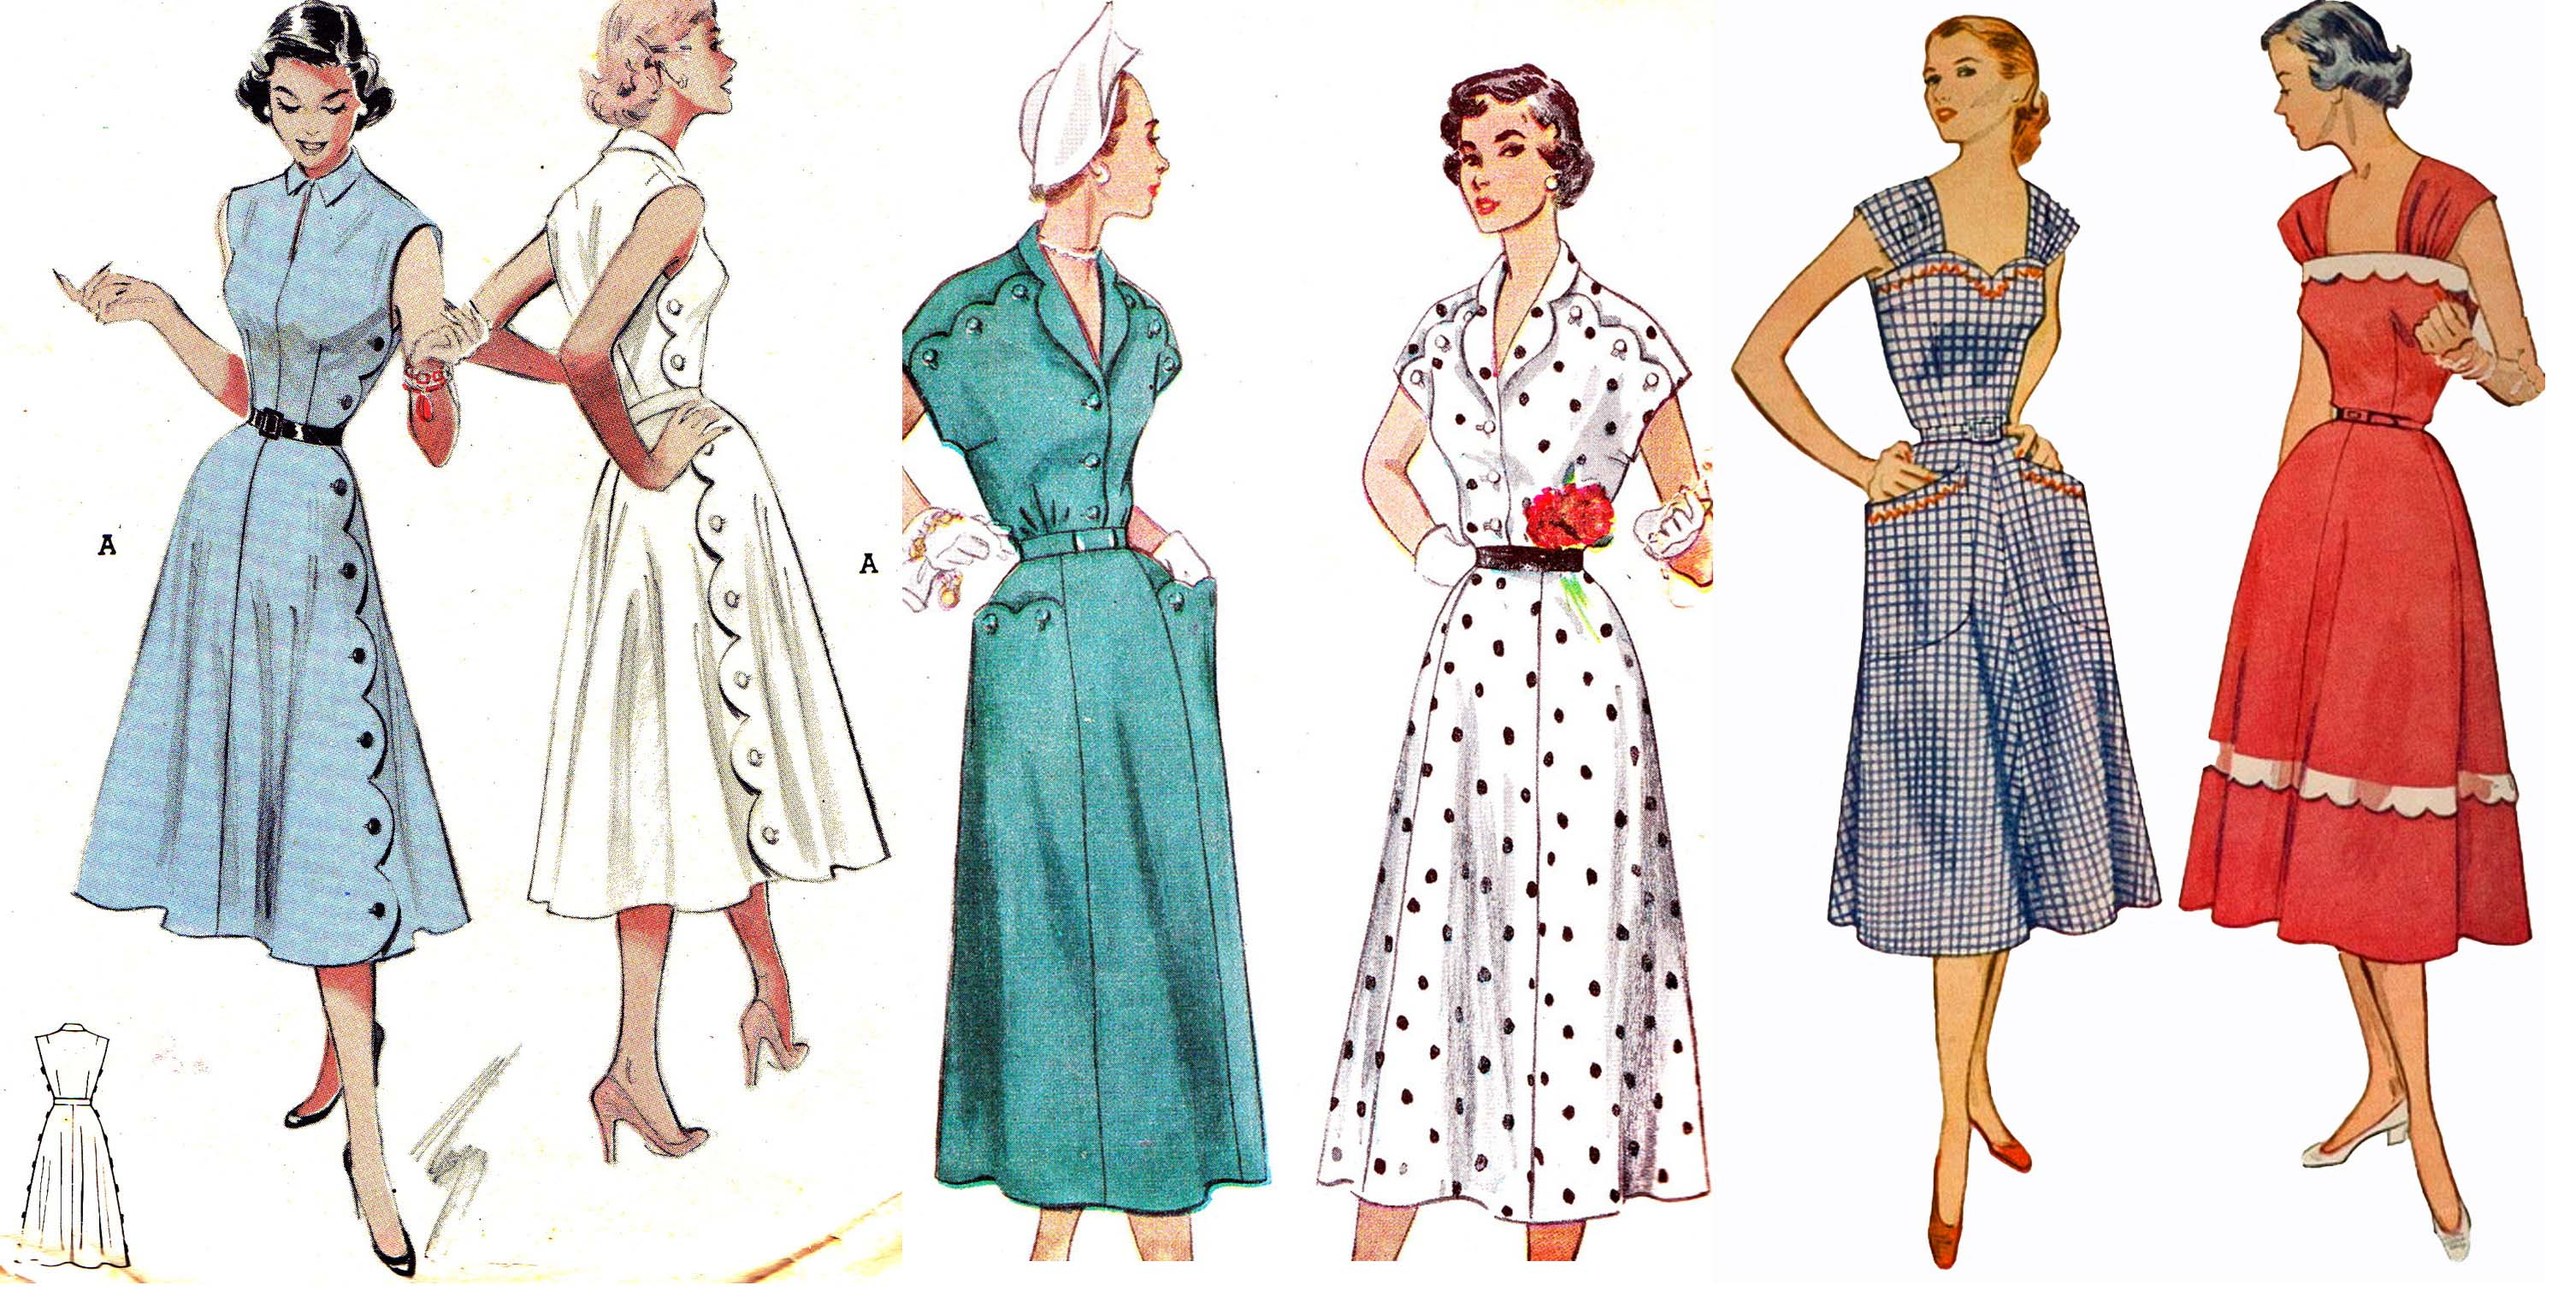 3012x1530 Fashion In The 1950s Copy1 On Emaze